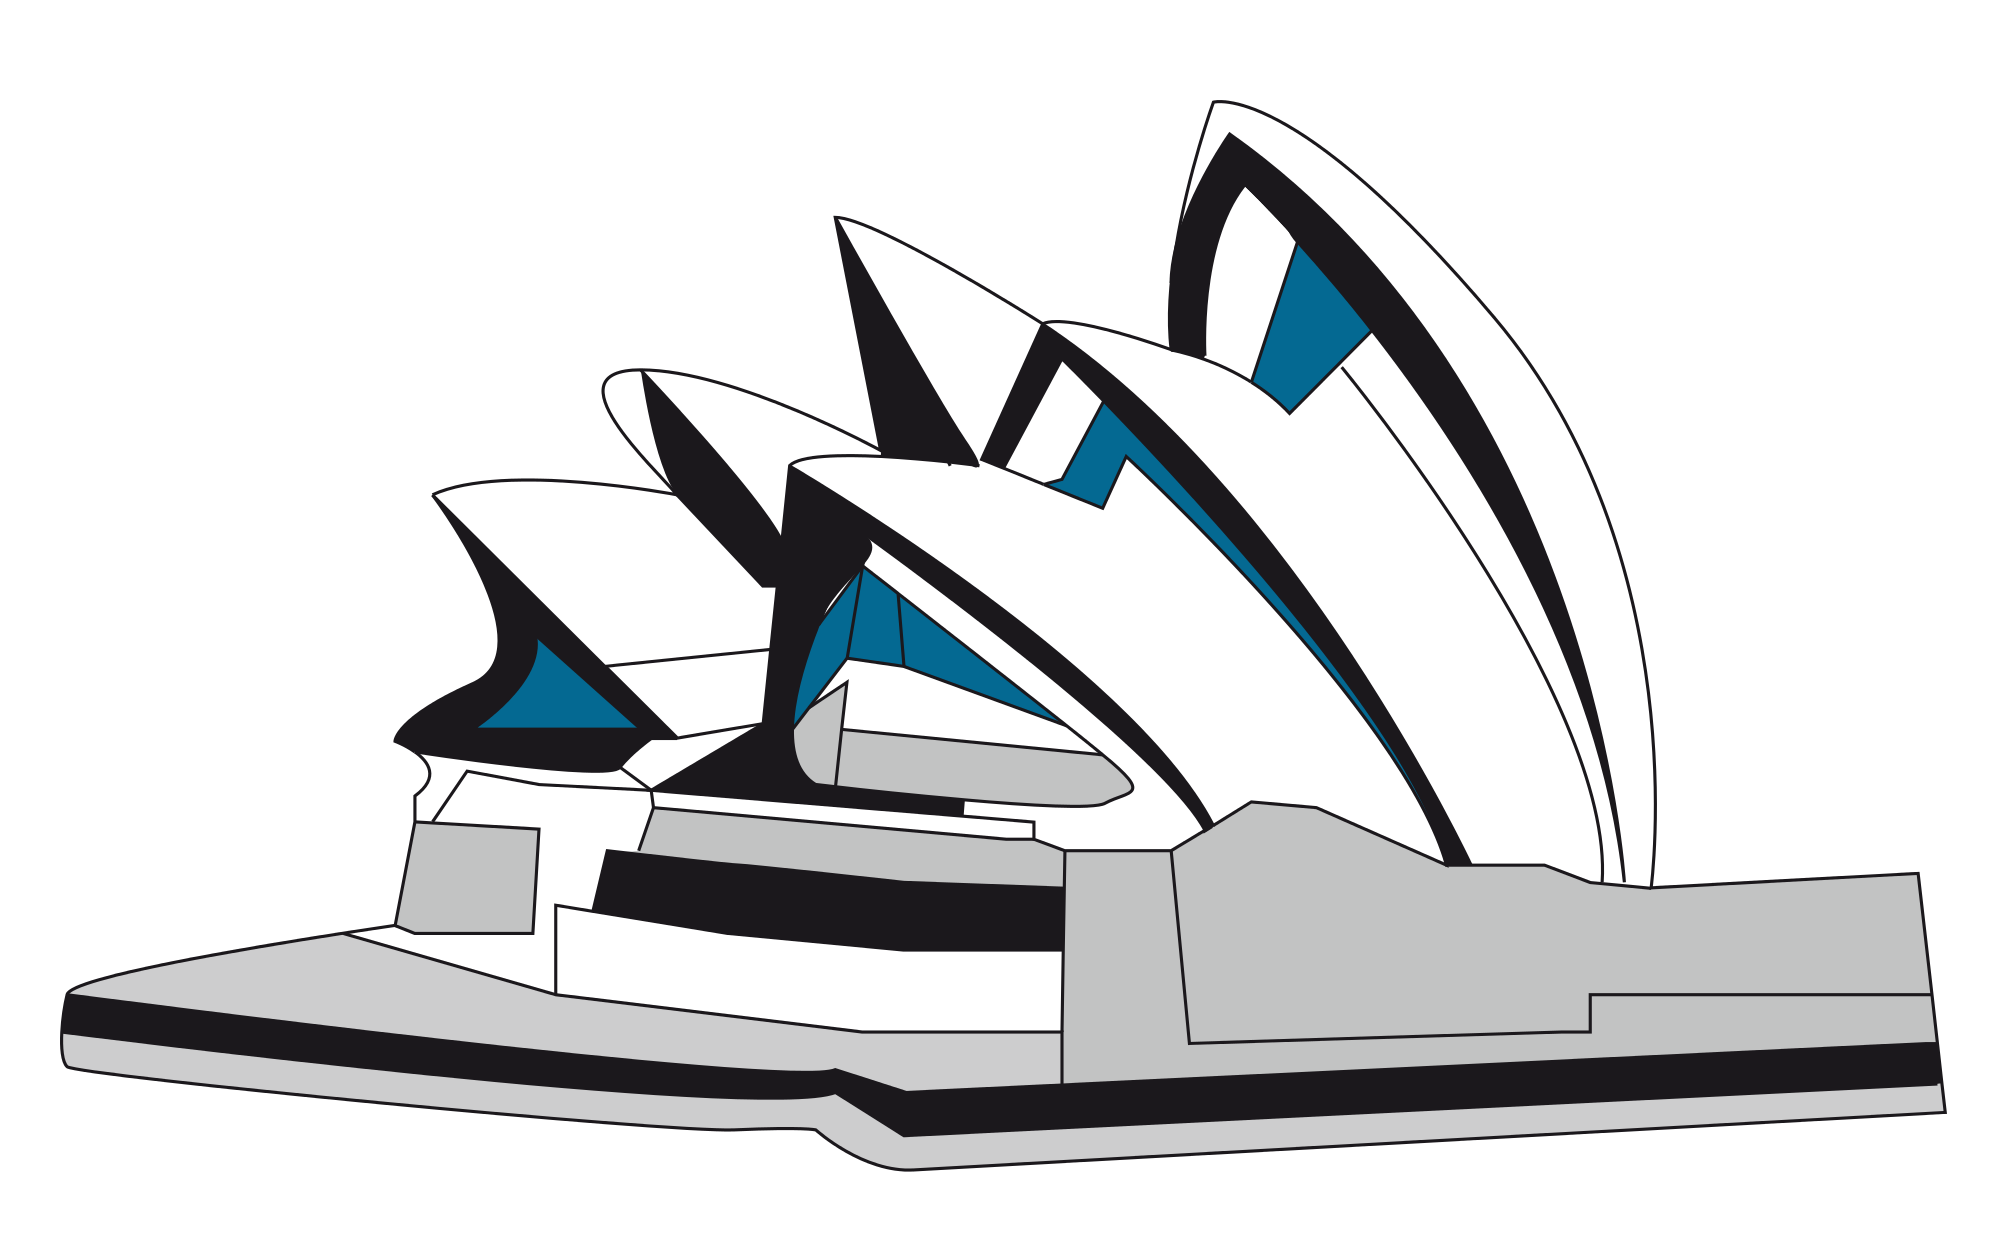 Png Sydney Opera House - Open Hdpng.com , Transparent background PNG HD thumbnail